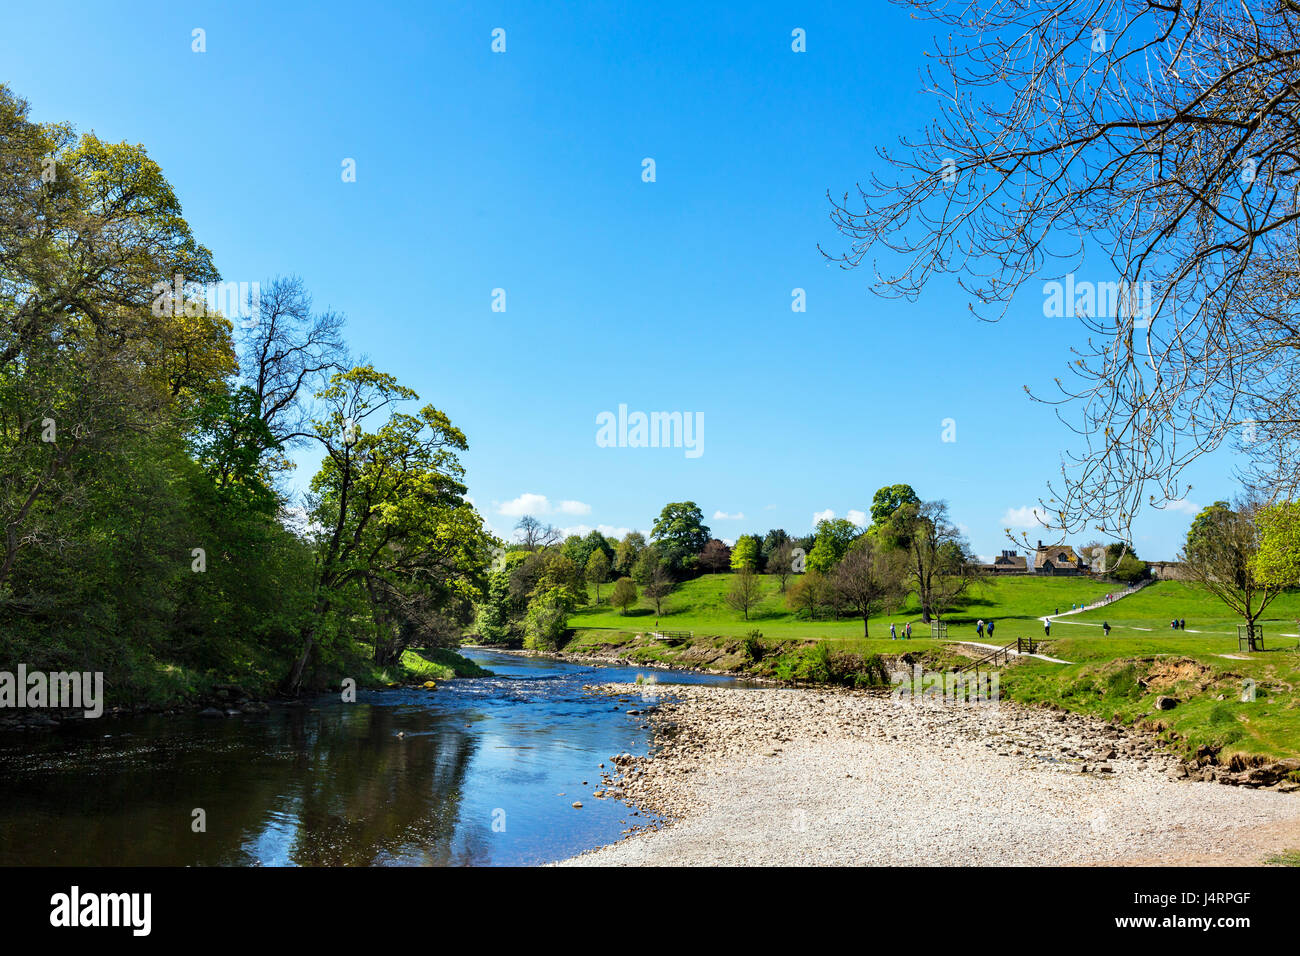 River Wharfe at Bolton Priory, Bolton Abbey, Yorkshire Dales National Park, North Yorkshire, England, UK - Stock Image